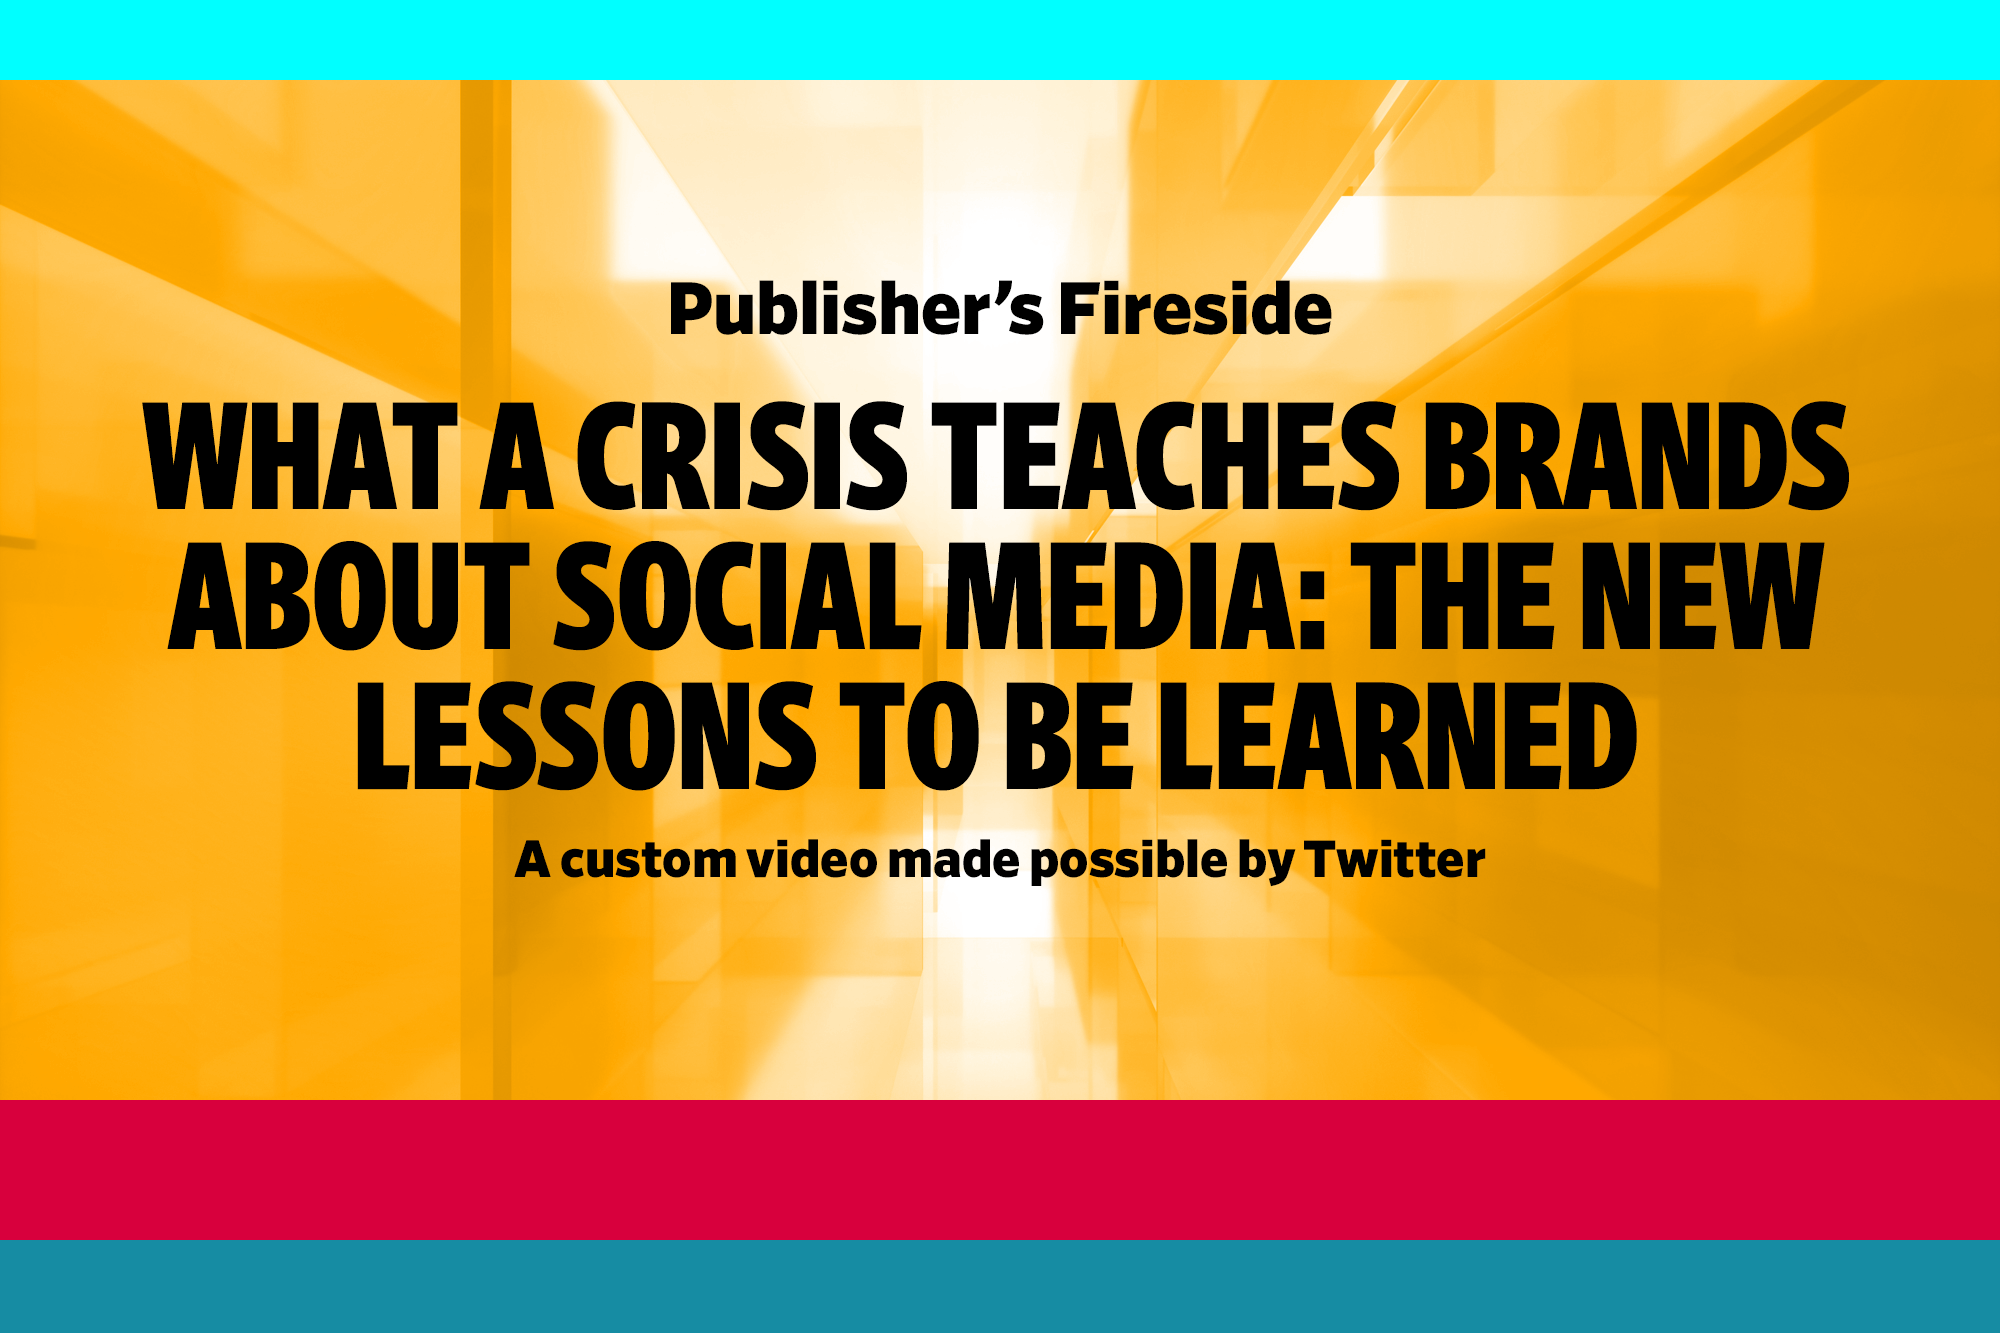 What a crisis teaches brands about social media: The new lessons to be learned